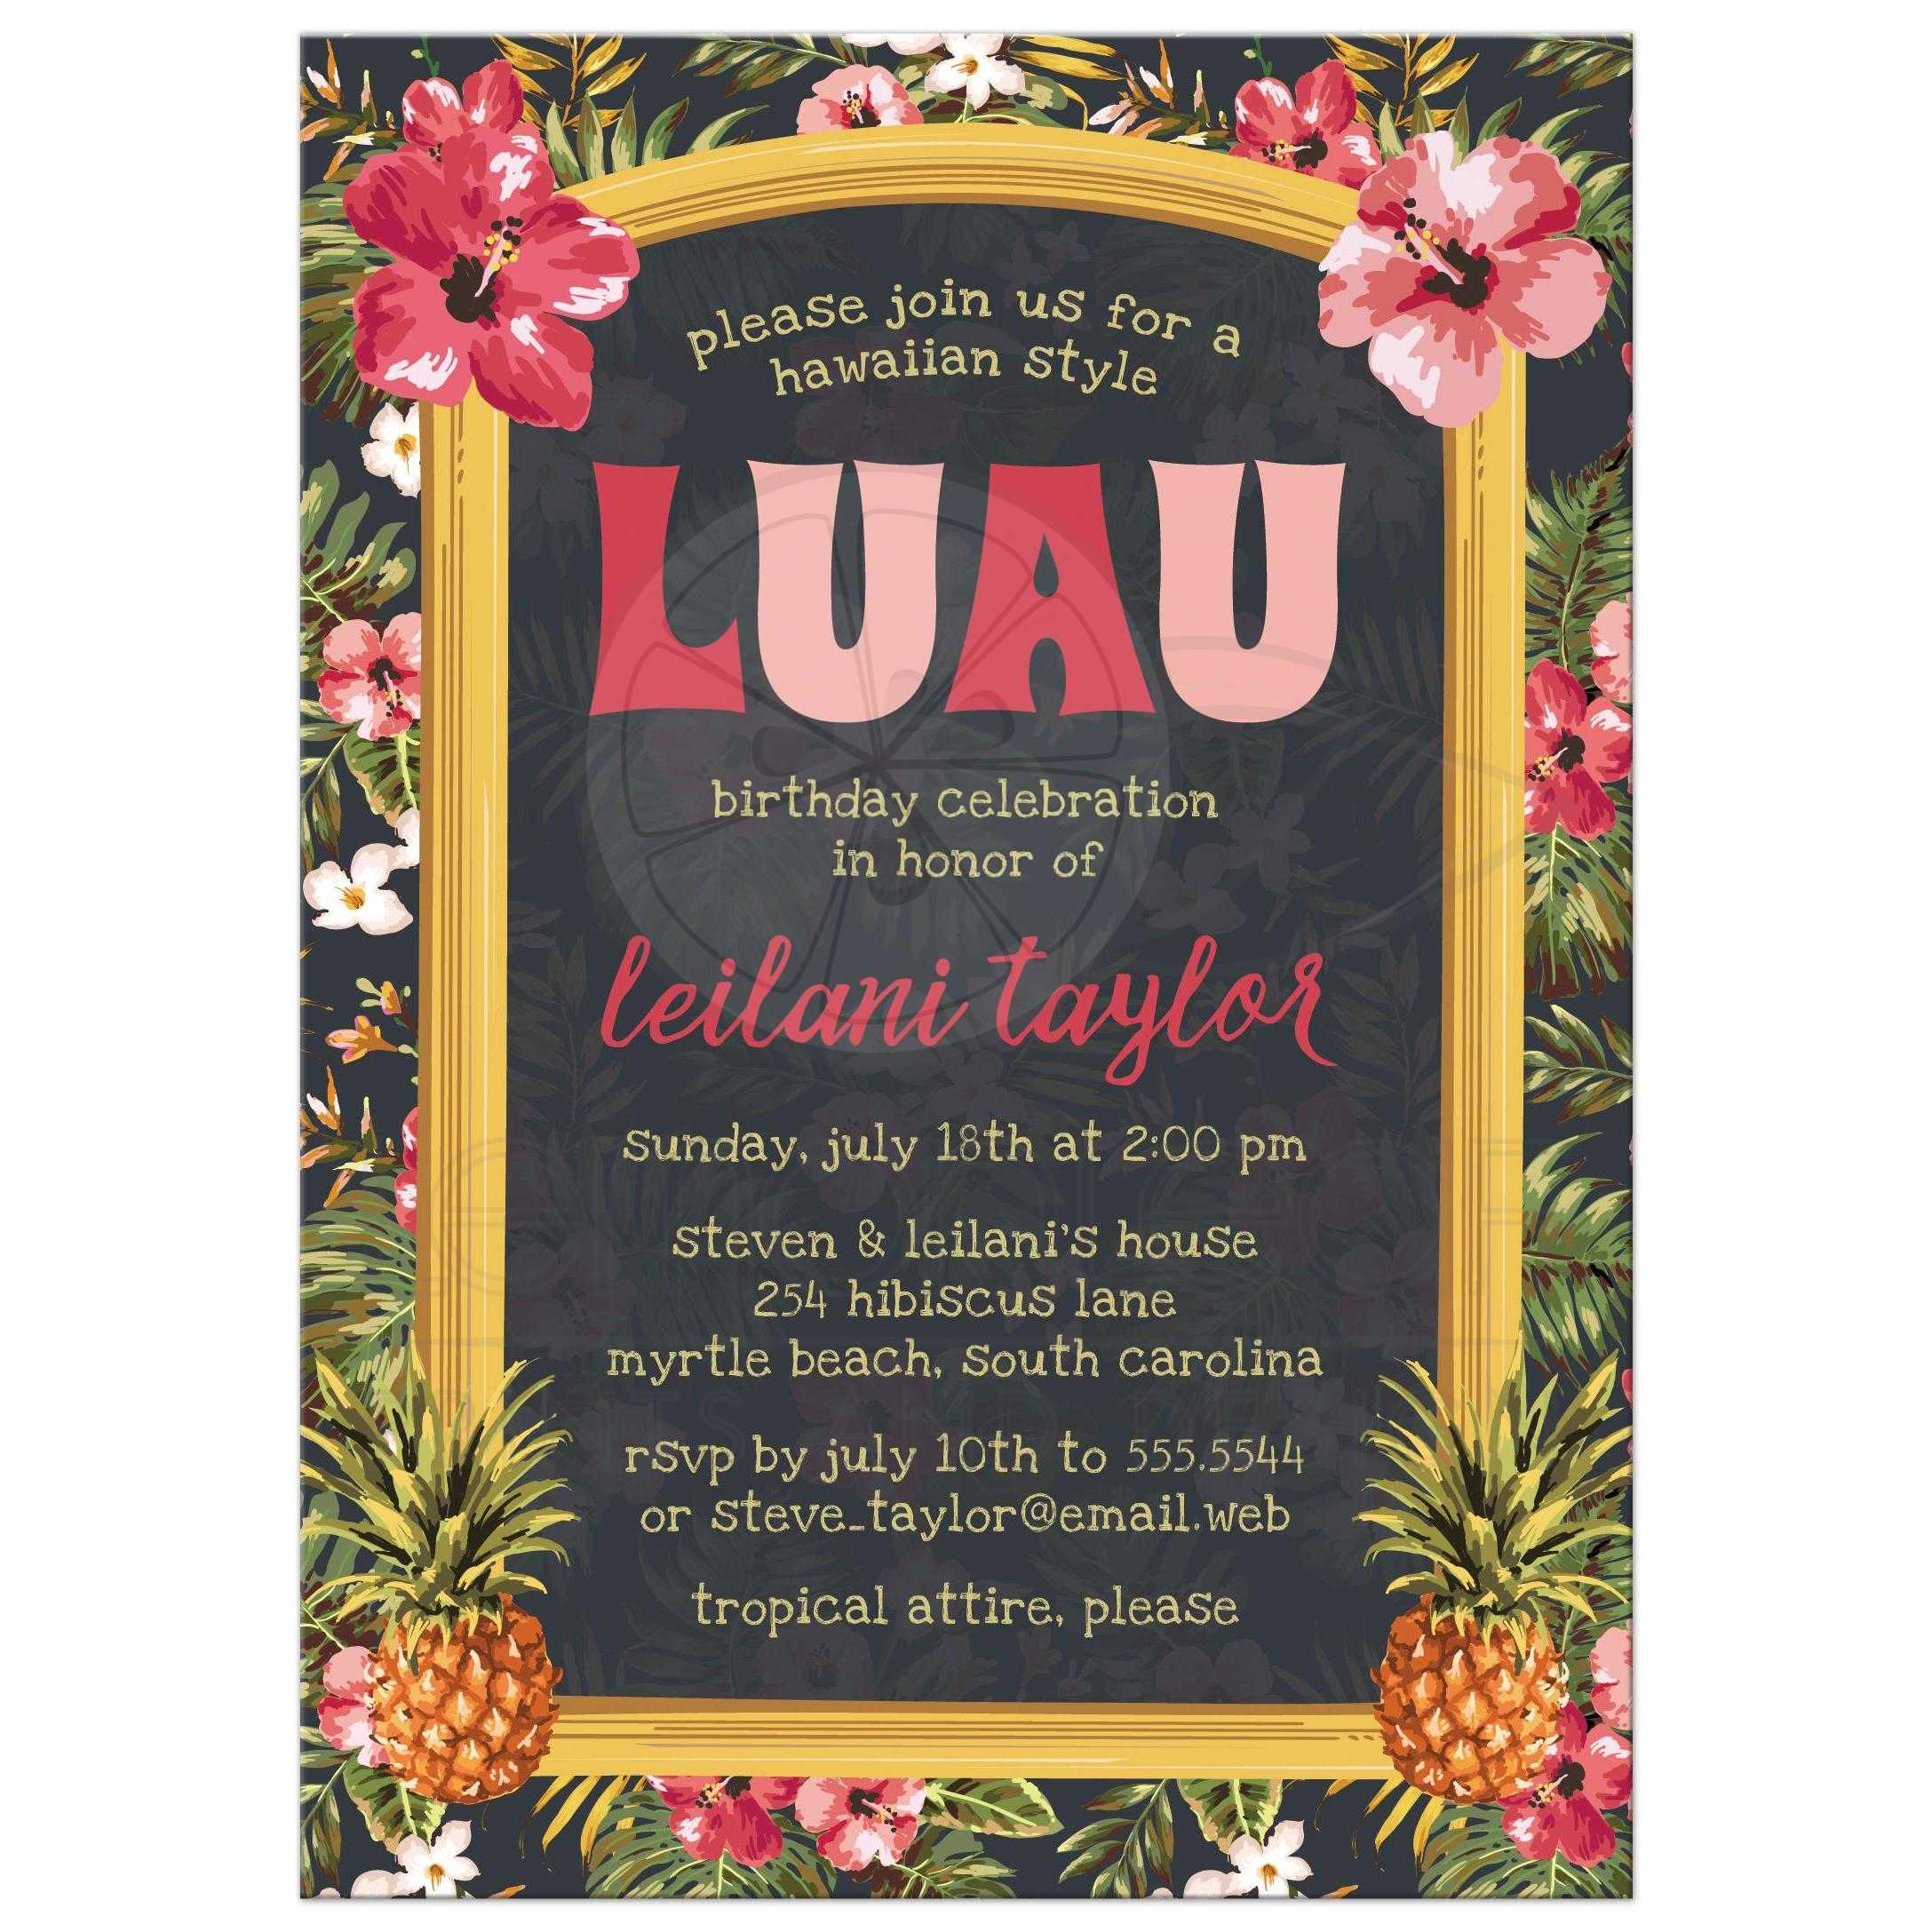 Adult birthday party invitation tropical hawaiian luau tropical hawaiian luau adult birthday party invitation front stopboris Gallery